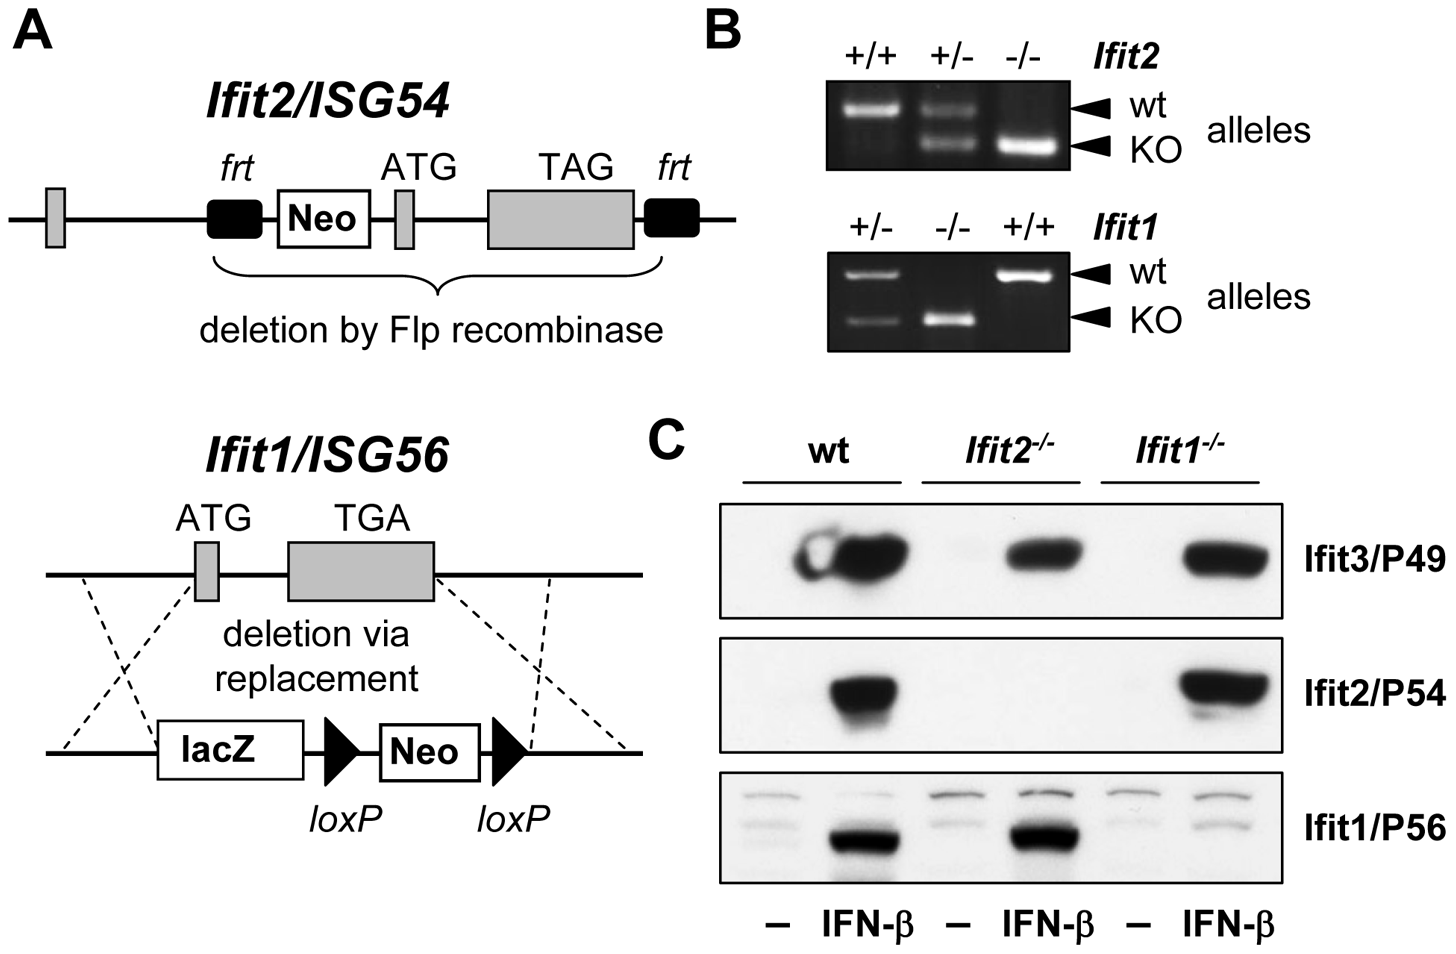 Generation of <i>Ifit2/ISG54</i> and <i>Ifit1/ISG56</i> knockout mice.